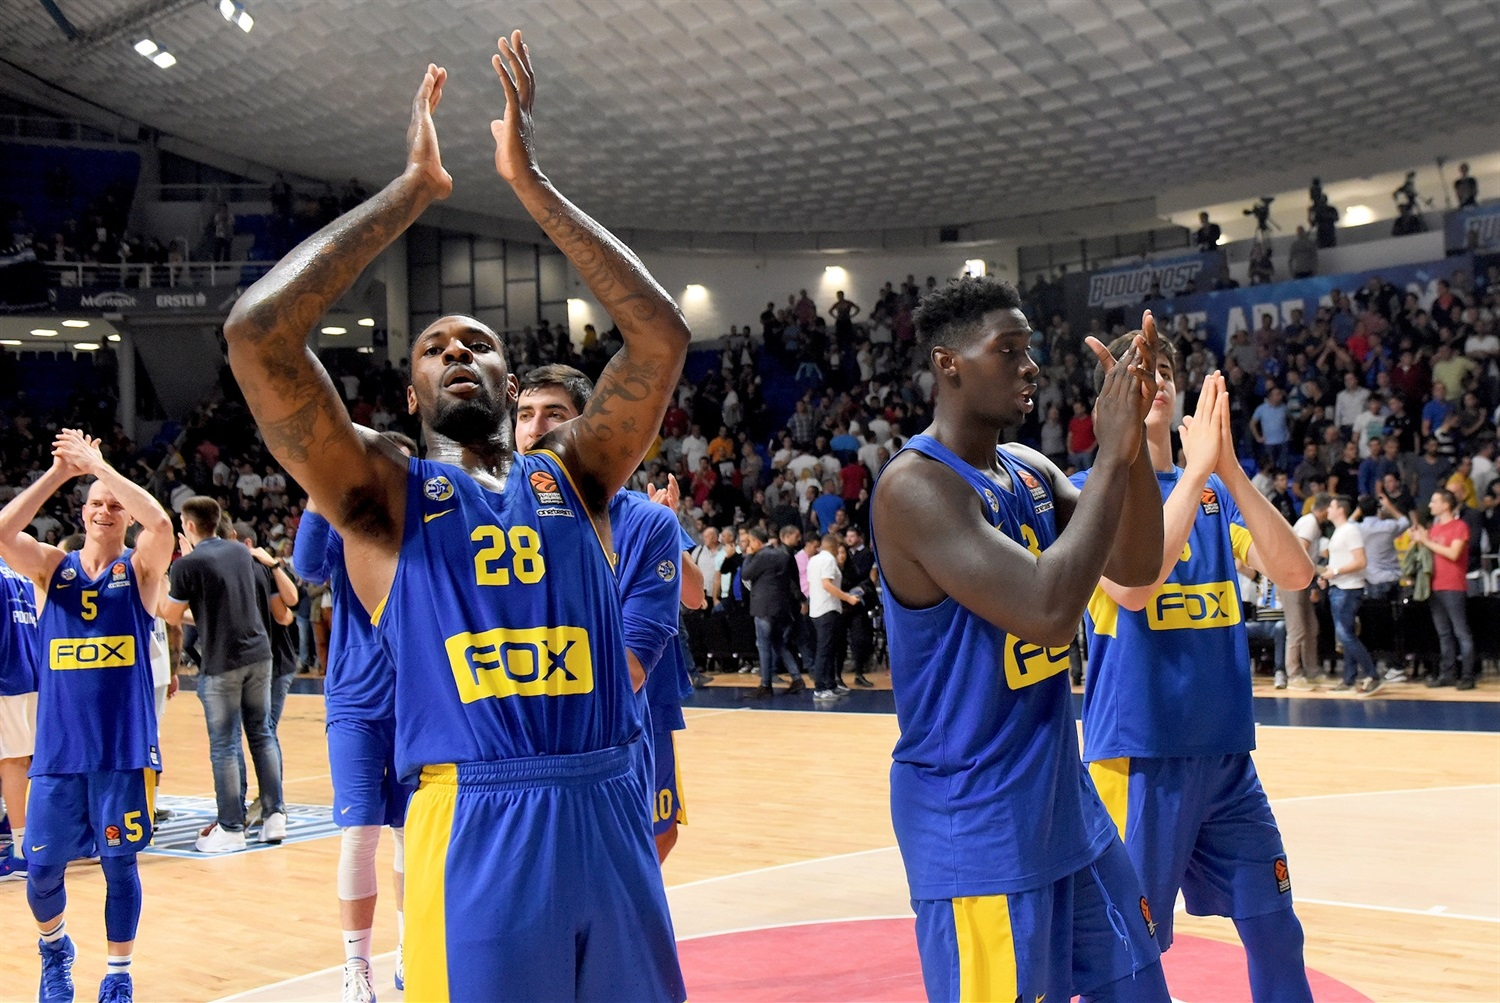 Tarik Black celebrates - Maccabi FOX Tel Aviv - EB18